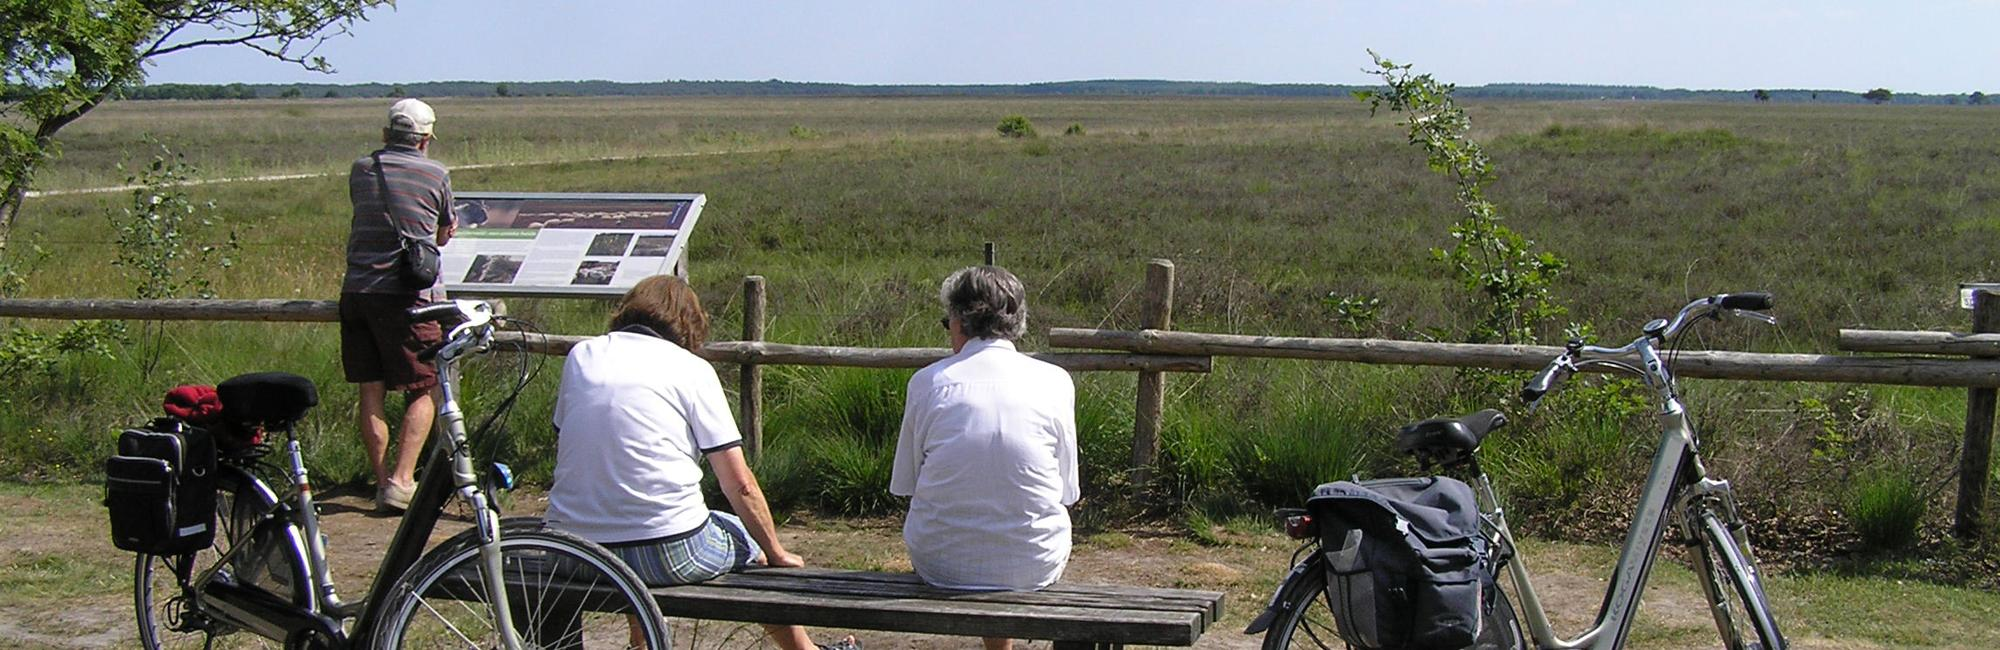 Dutch Bike Tours Radreisen Bilderberg Groot Heideborgh Veluwe Stern Tour